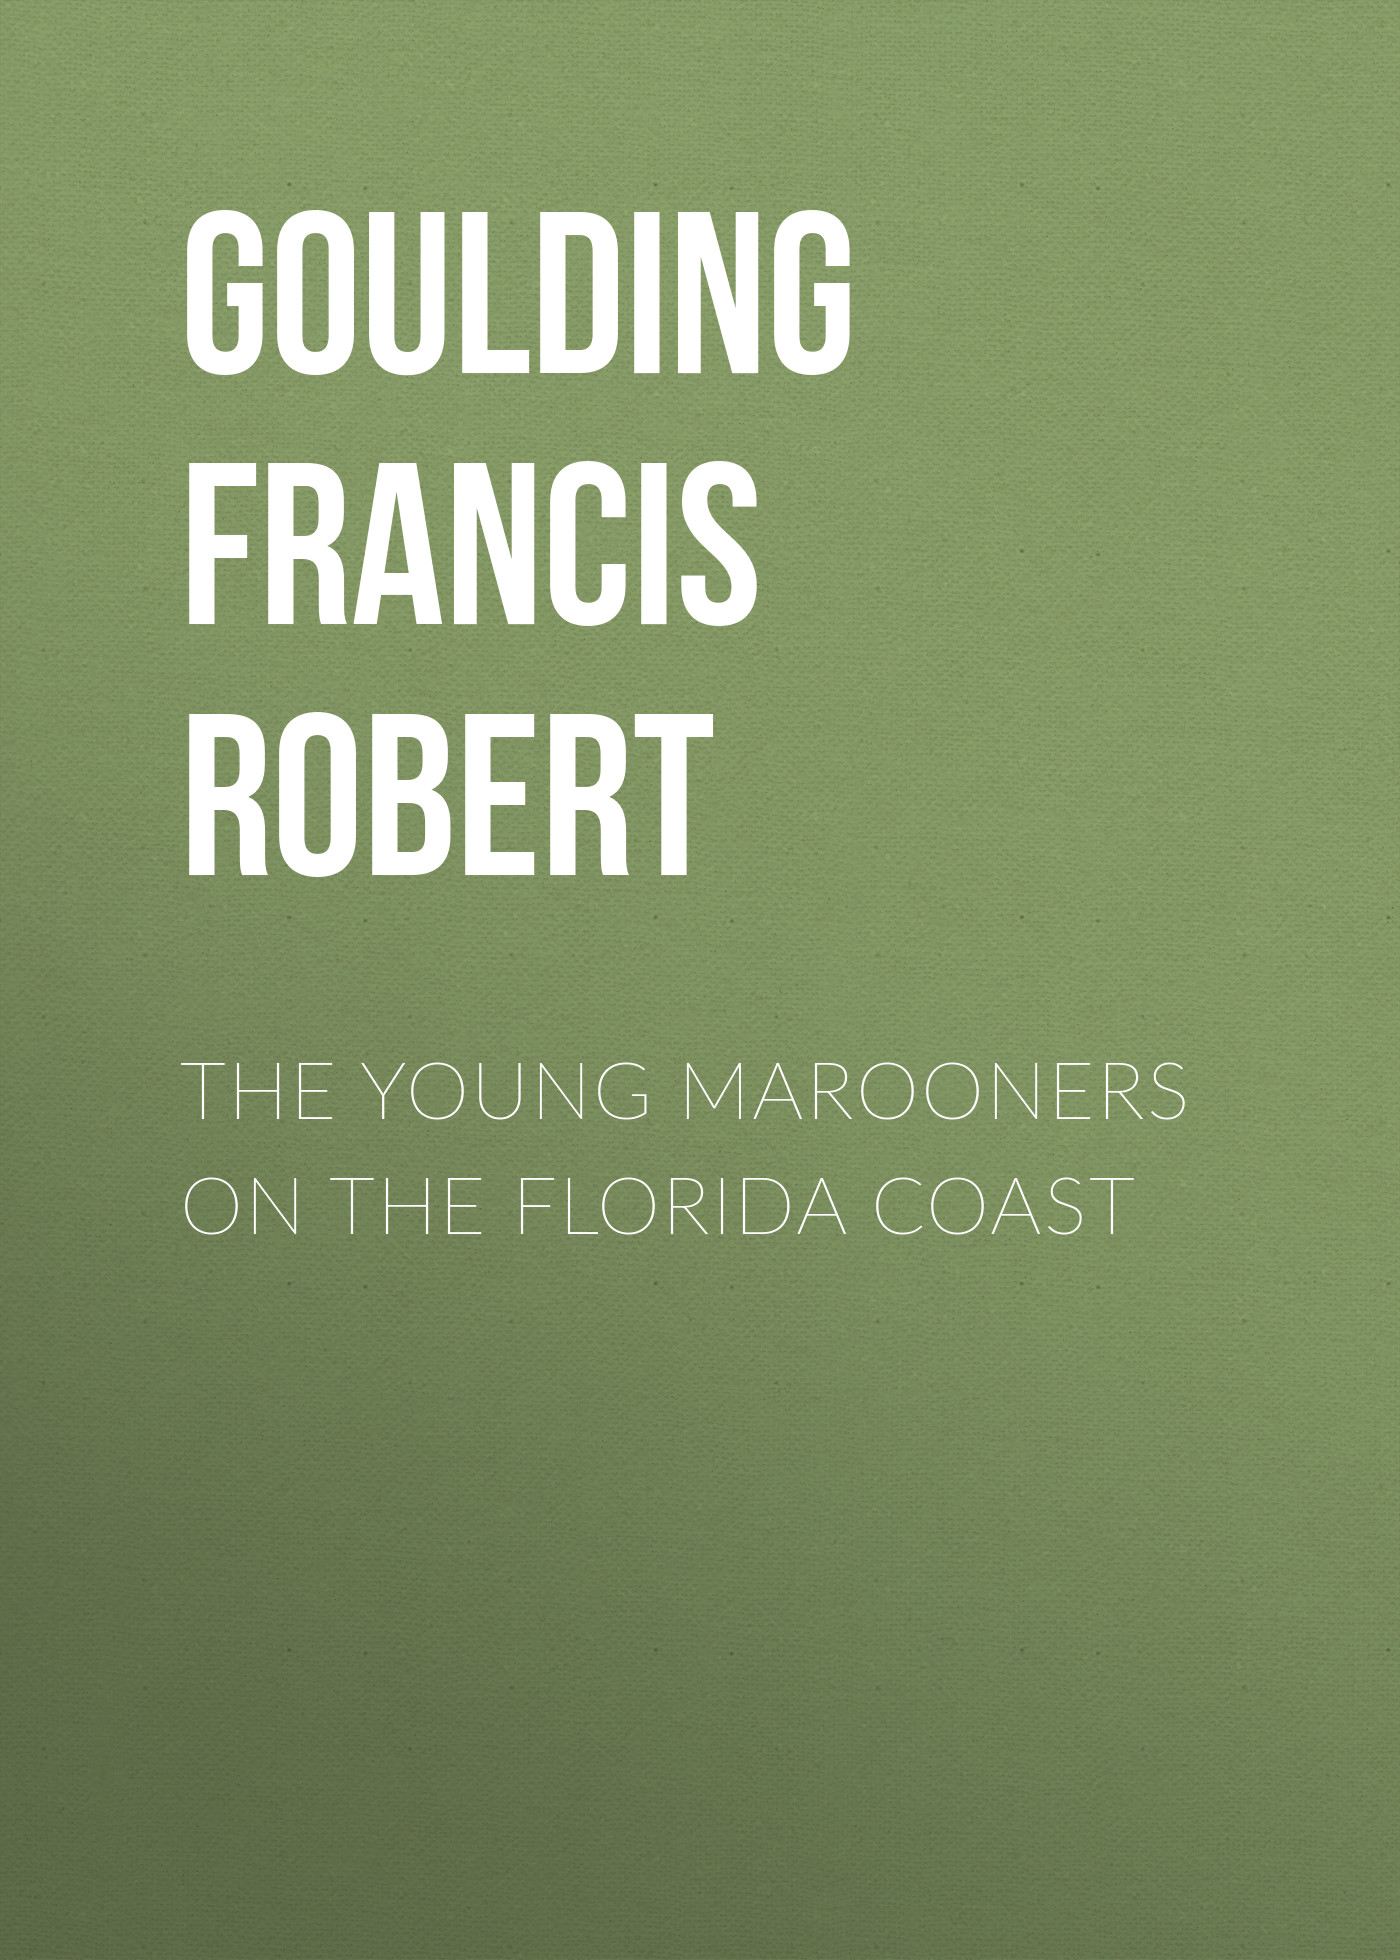 Goulding Francis Robert The Young Marooners on the Florida Coast francis a sullivan robert faricy ignatian exercises charismatic renewal similarities differences contrasts convergences